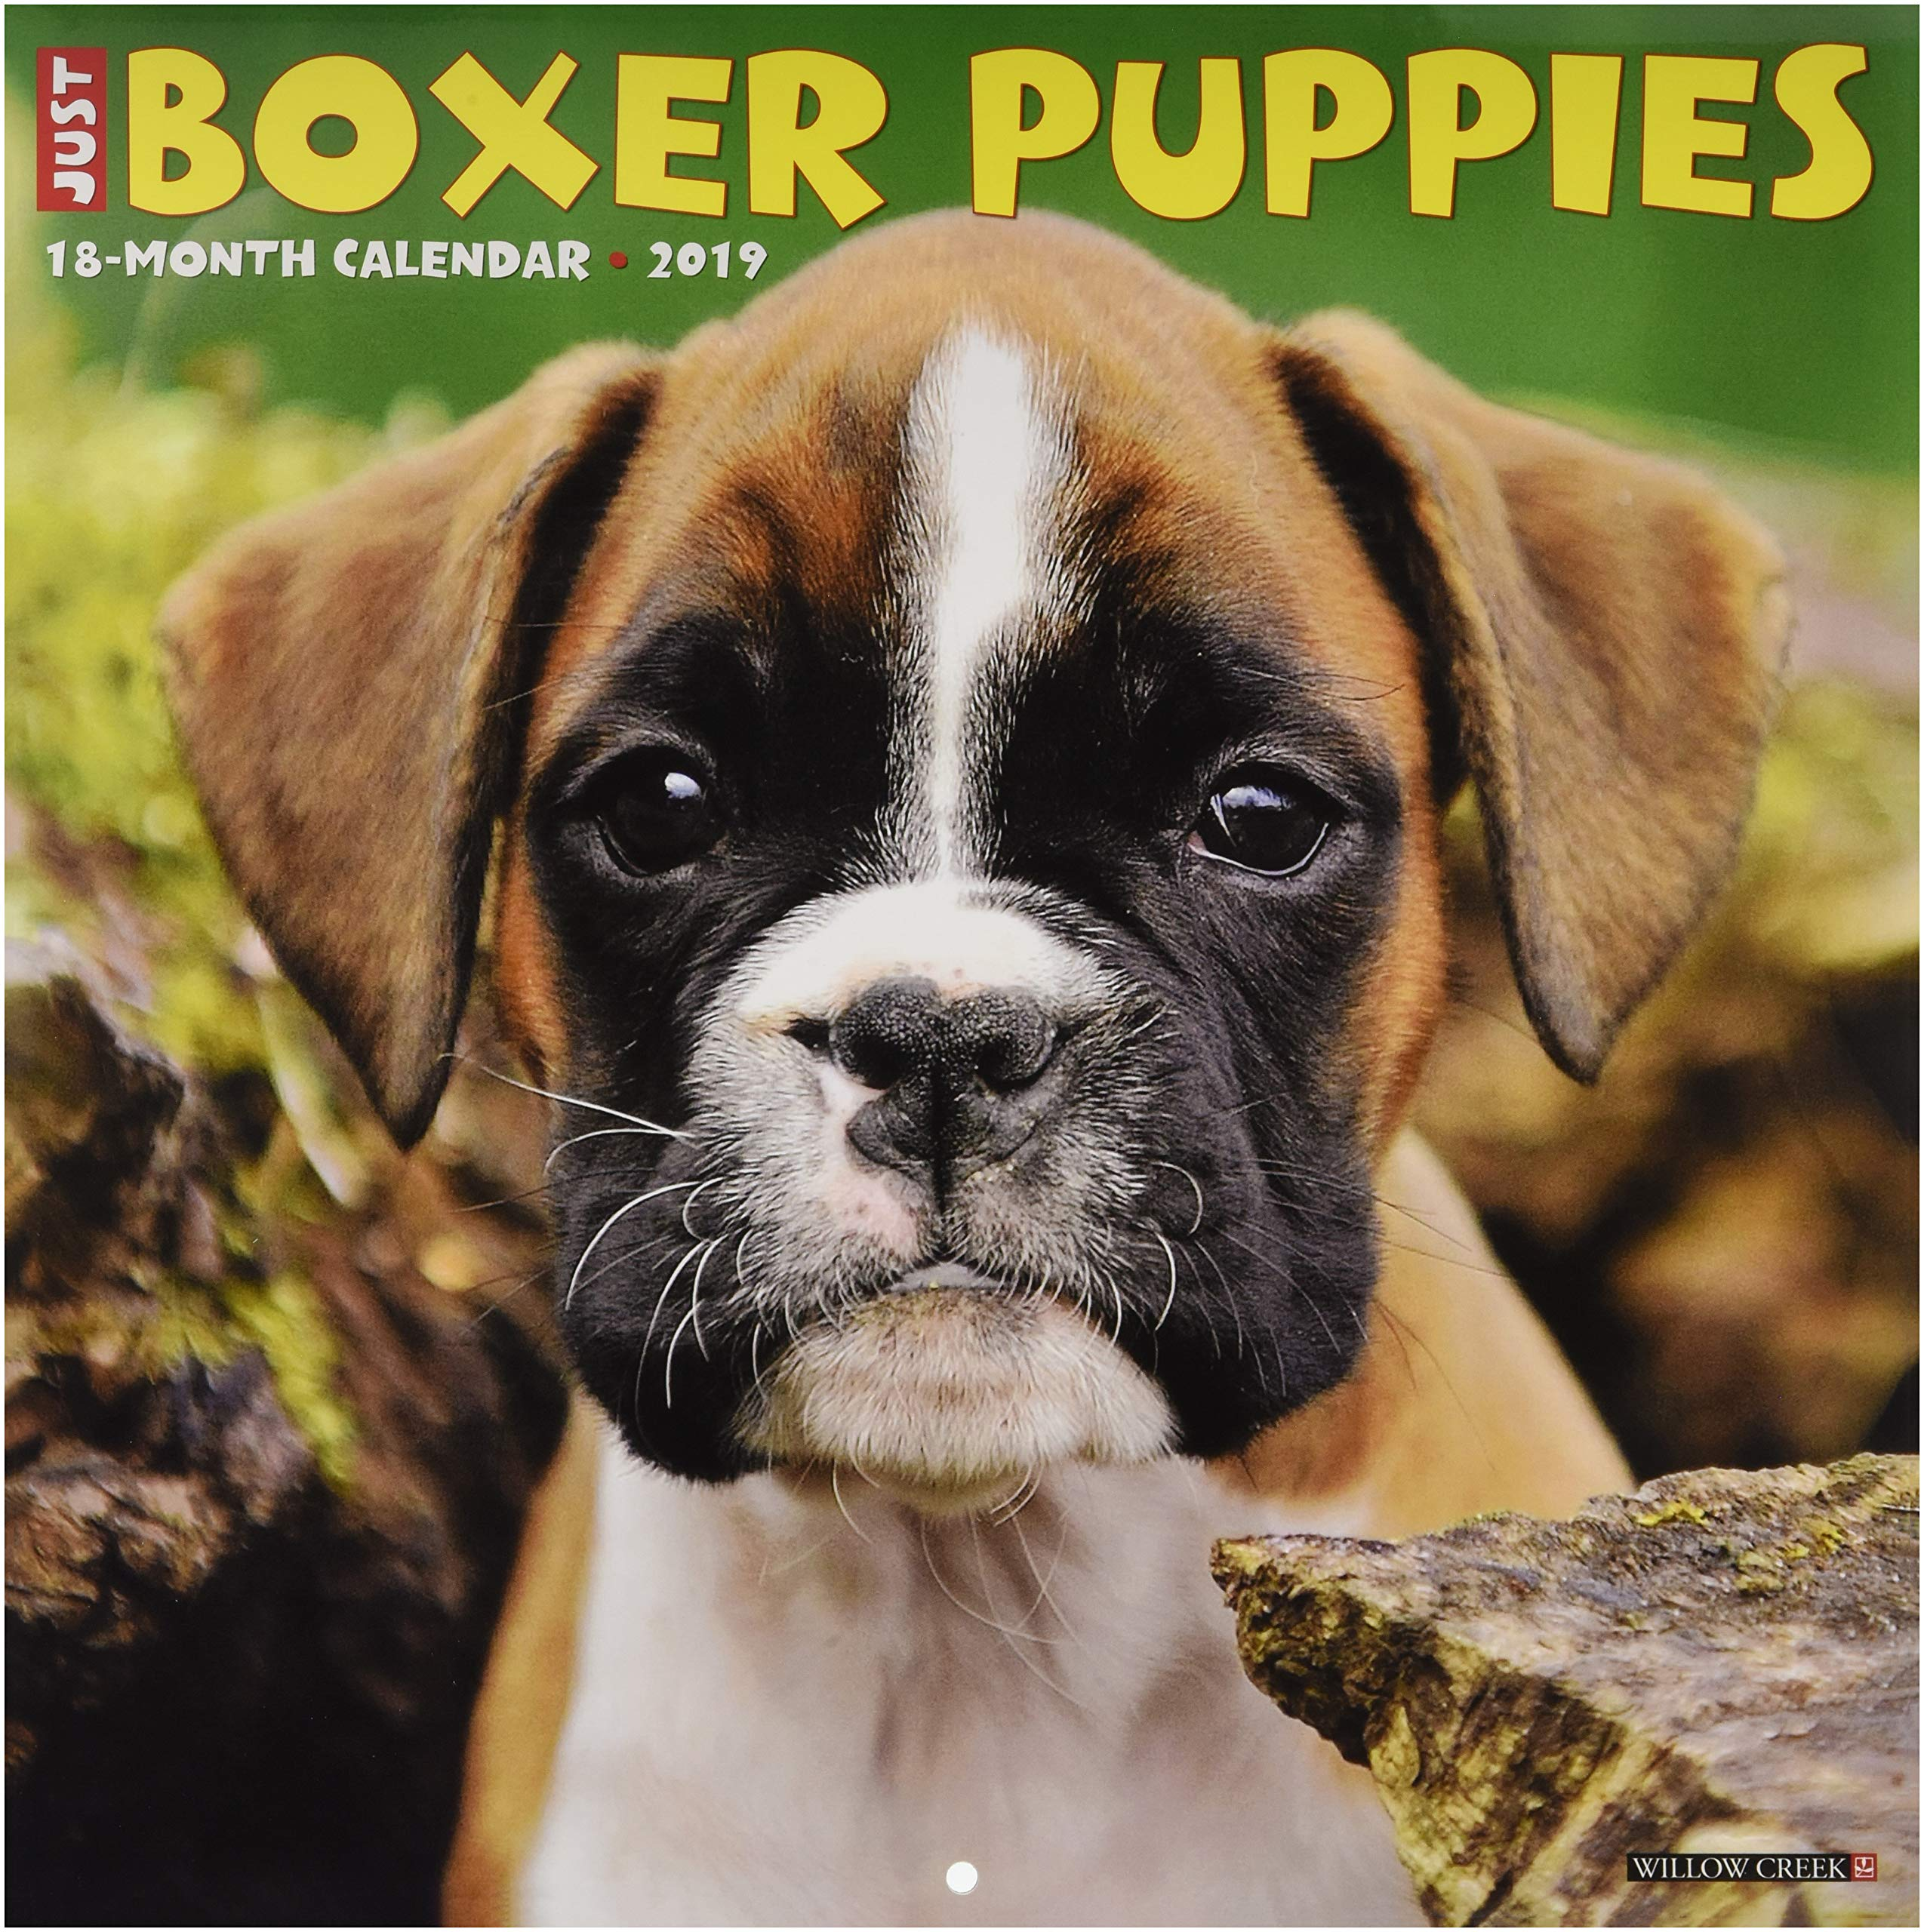 Just Boxer Puppies 2019 Wall Calendar Dog Breed Calendar Willow